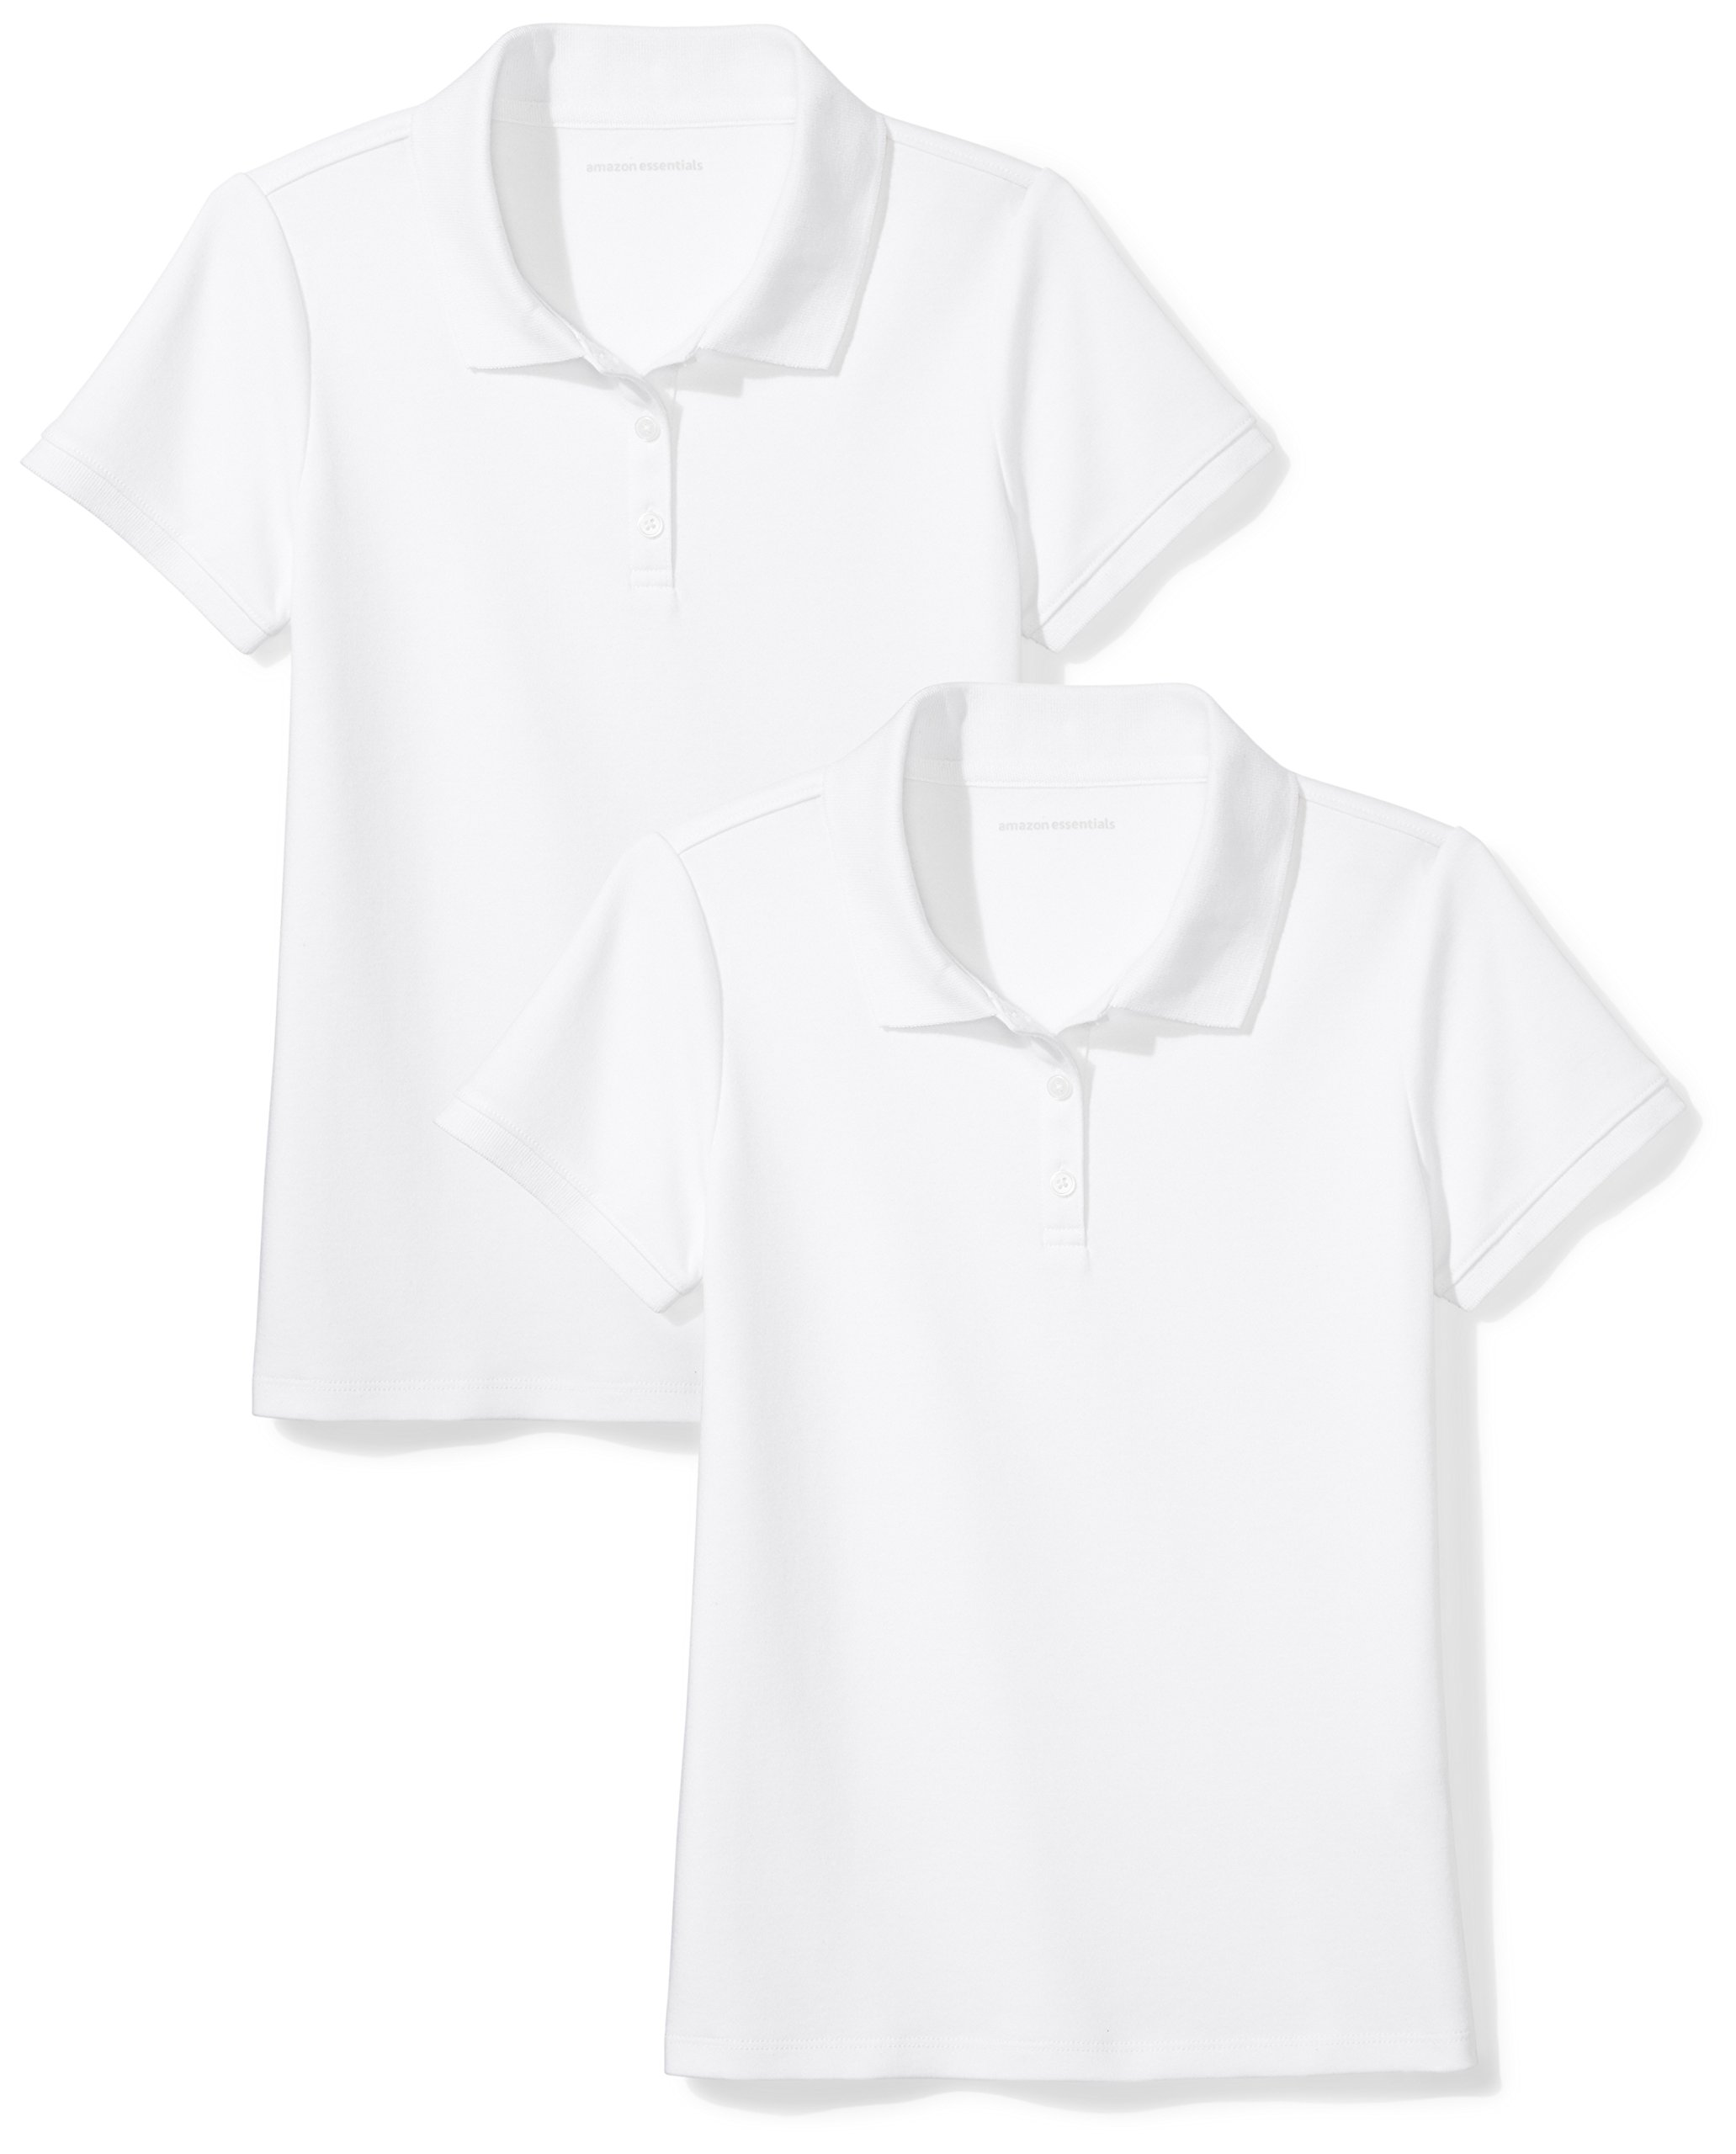 Amazon Essentials Girls' Uniform 2-Pack Interlock Polo, White/White, S (6-7)